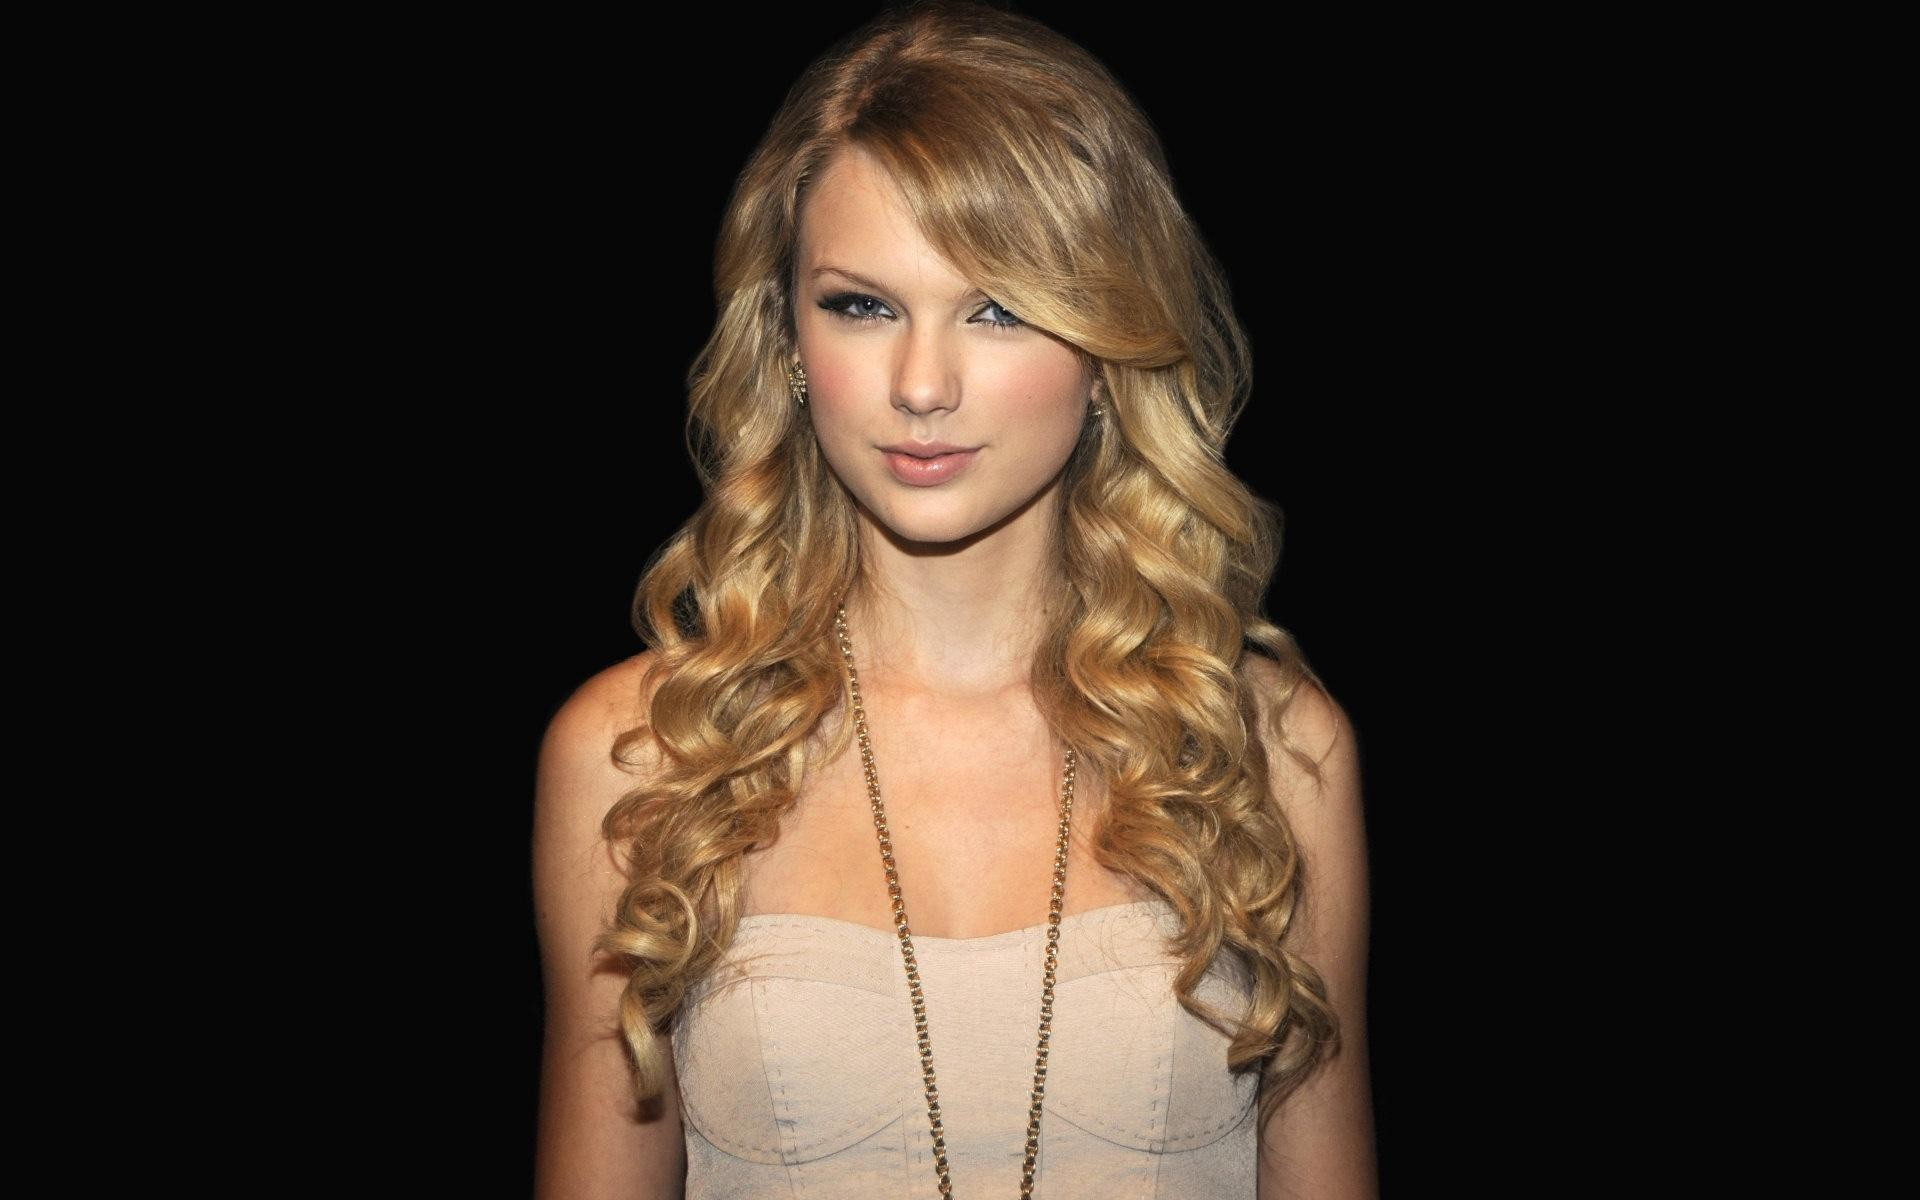 Taylor Swift hermosa - 1920x1200